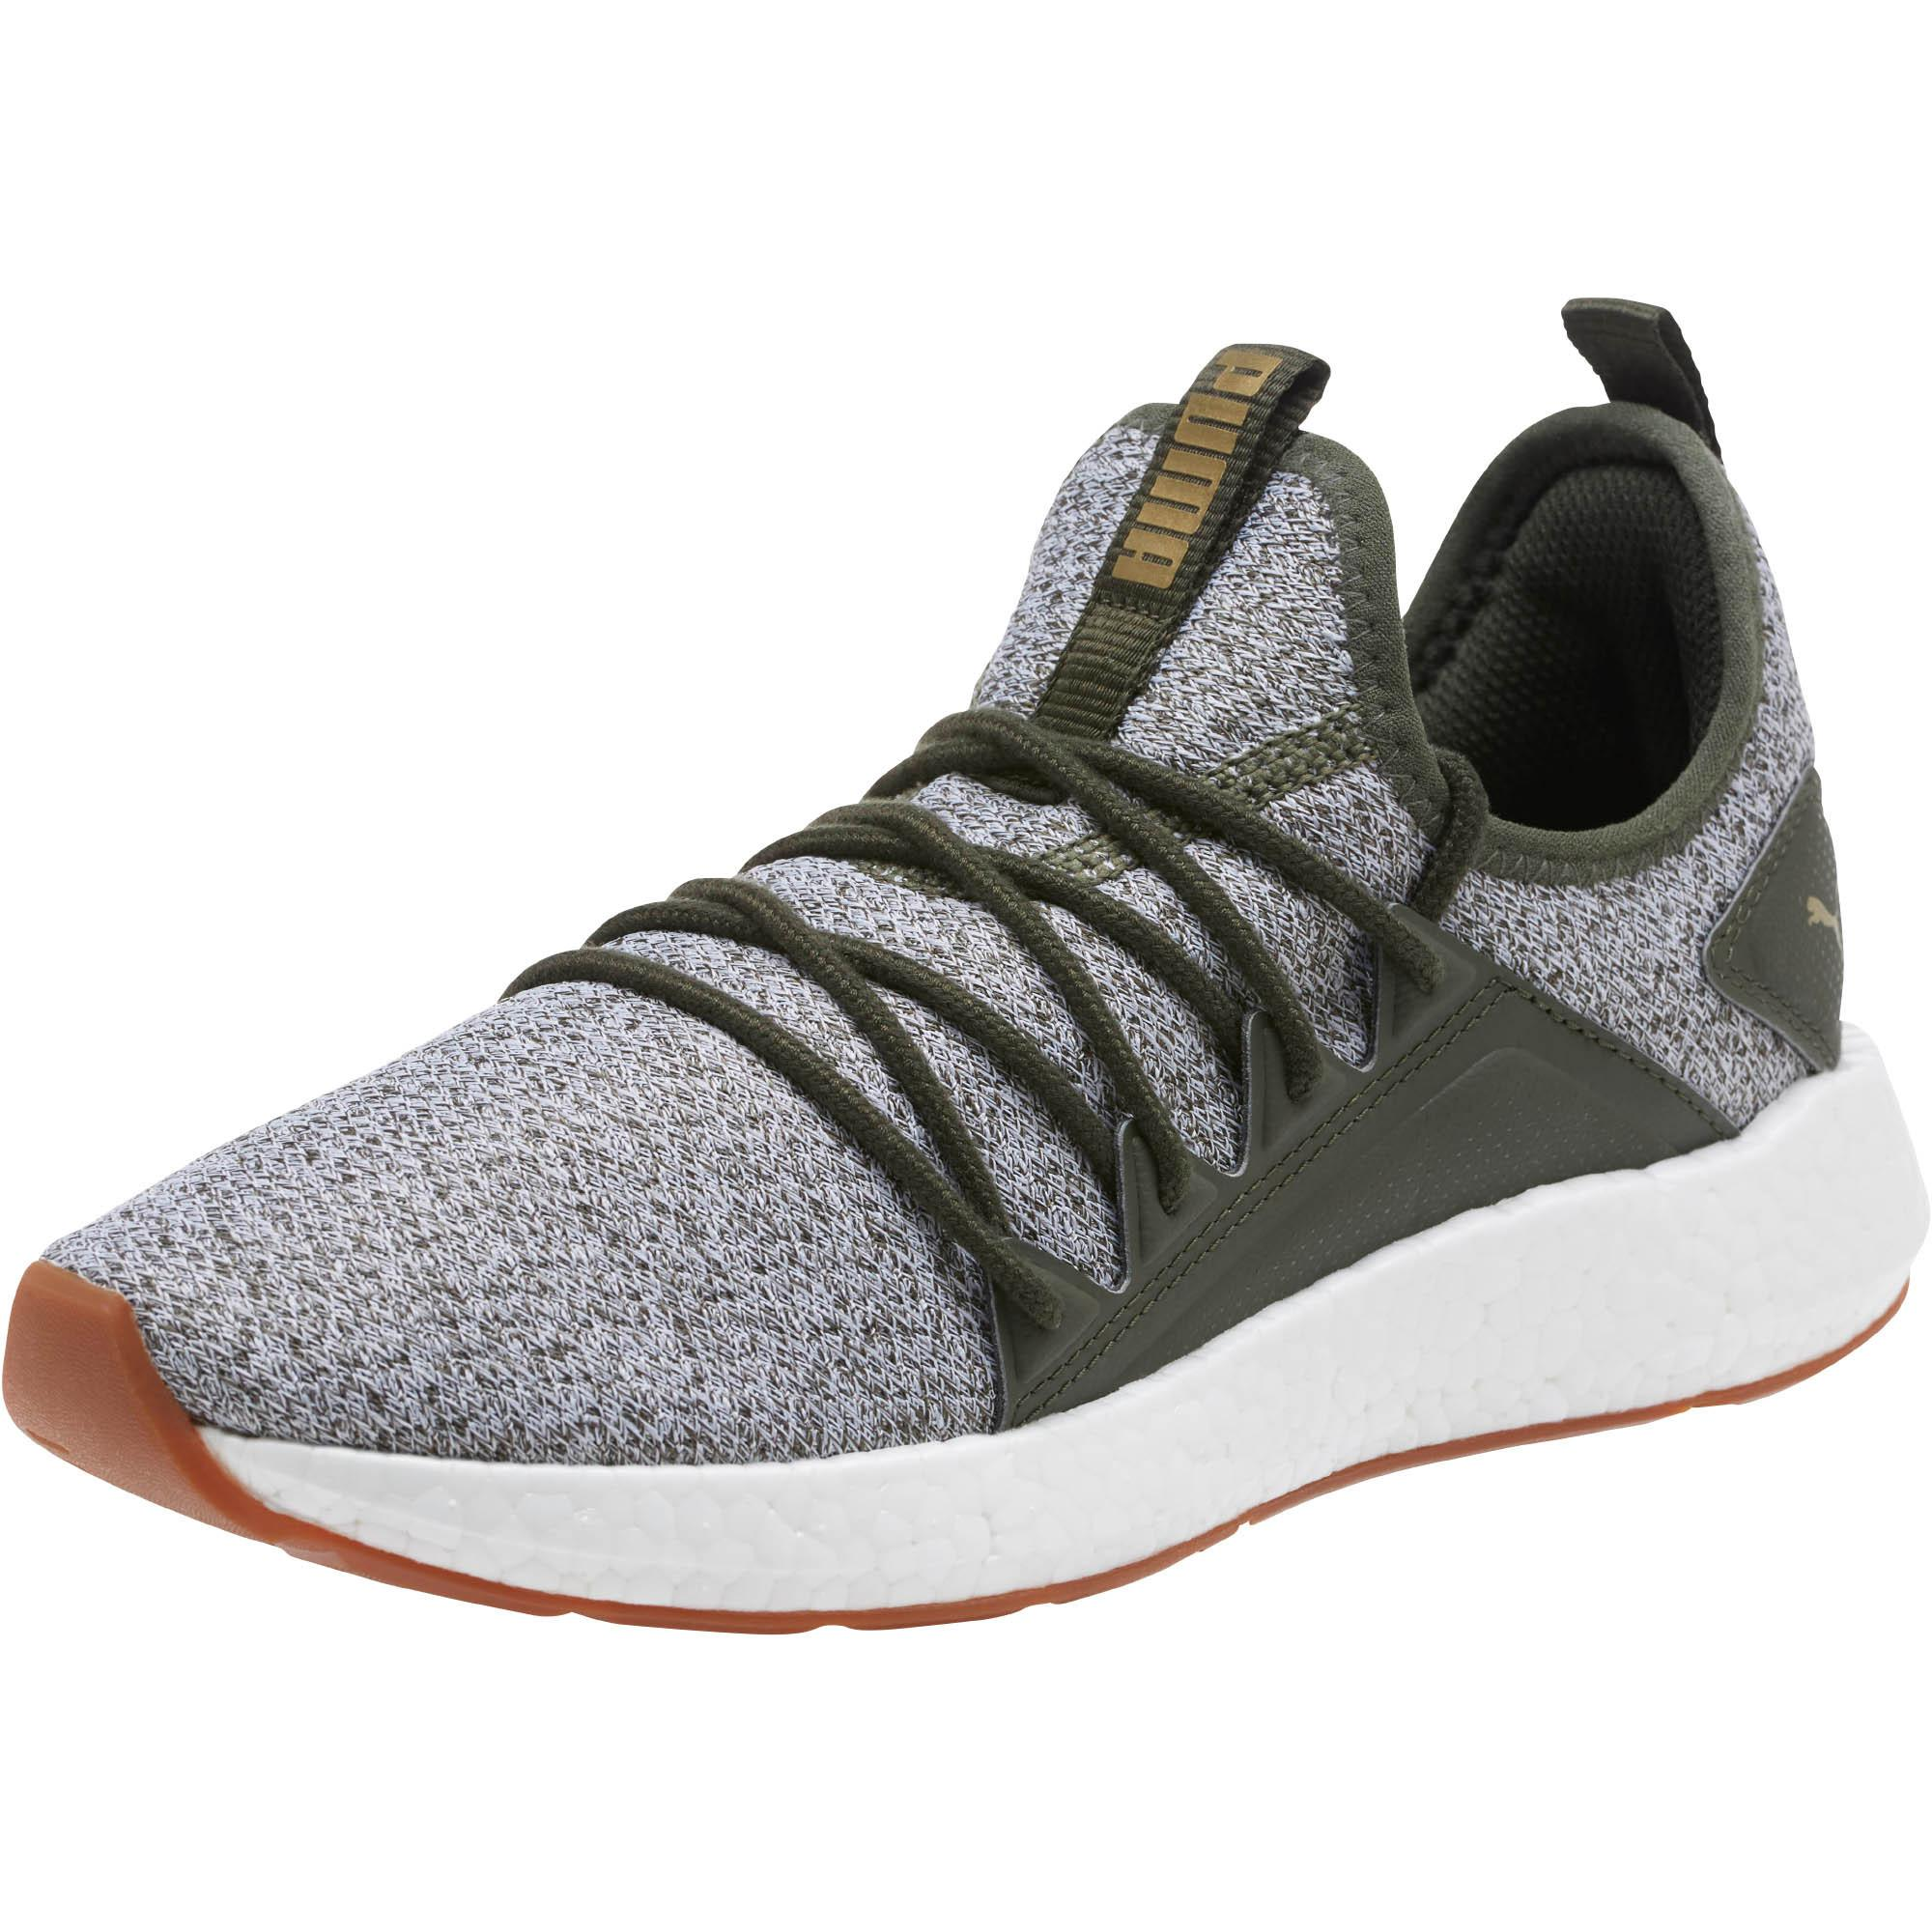 854fd7c4a53c Lyst - PUMA Nrgy Neko Knit Women s Running Shoes for Men